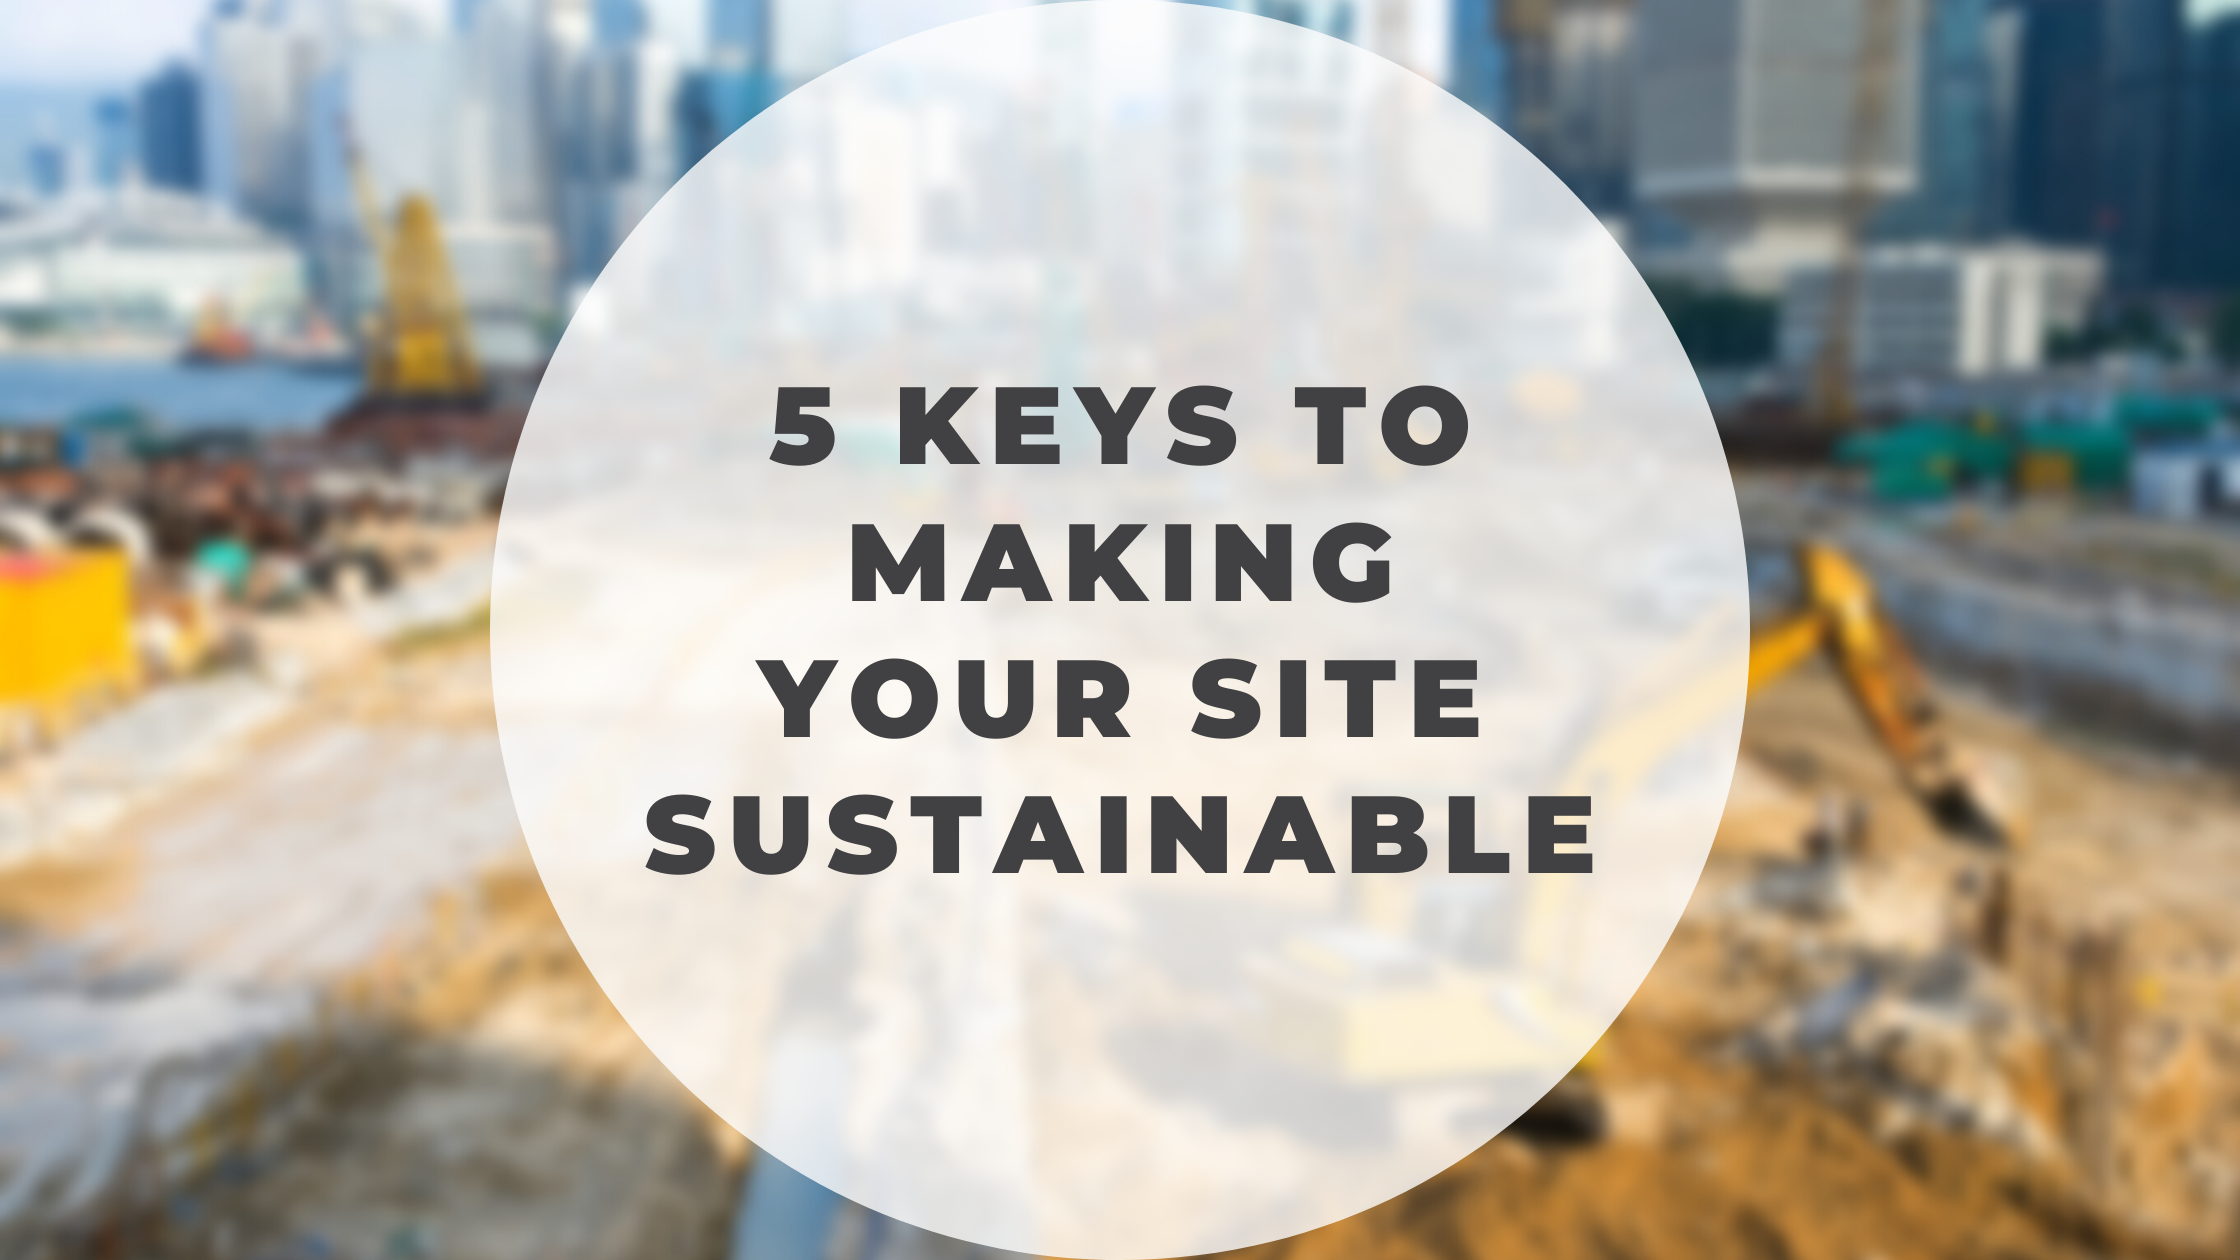 5 keys to make your site sustainable